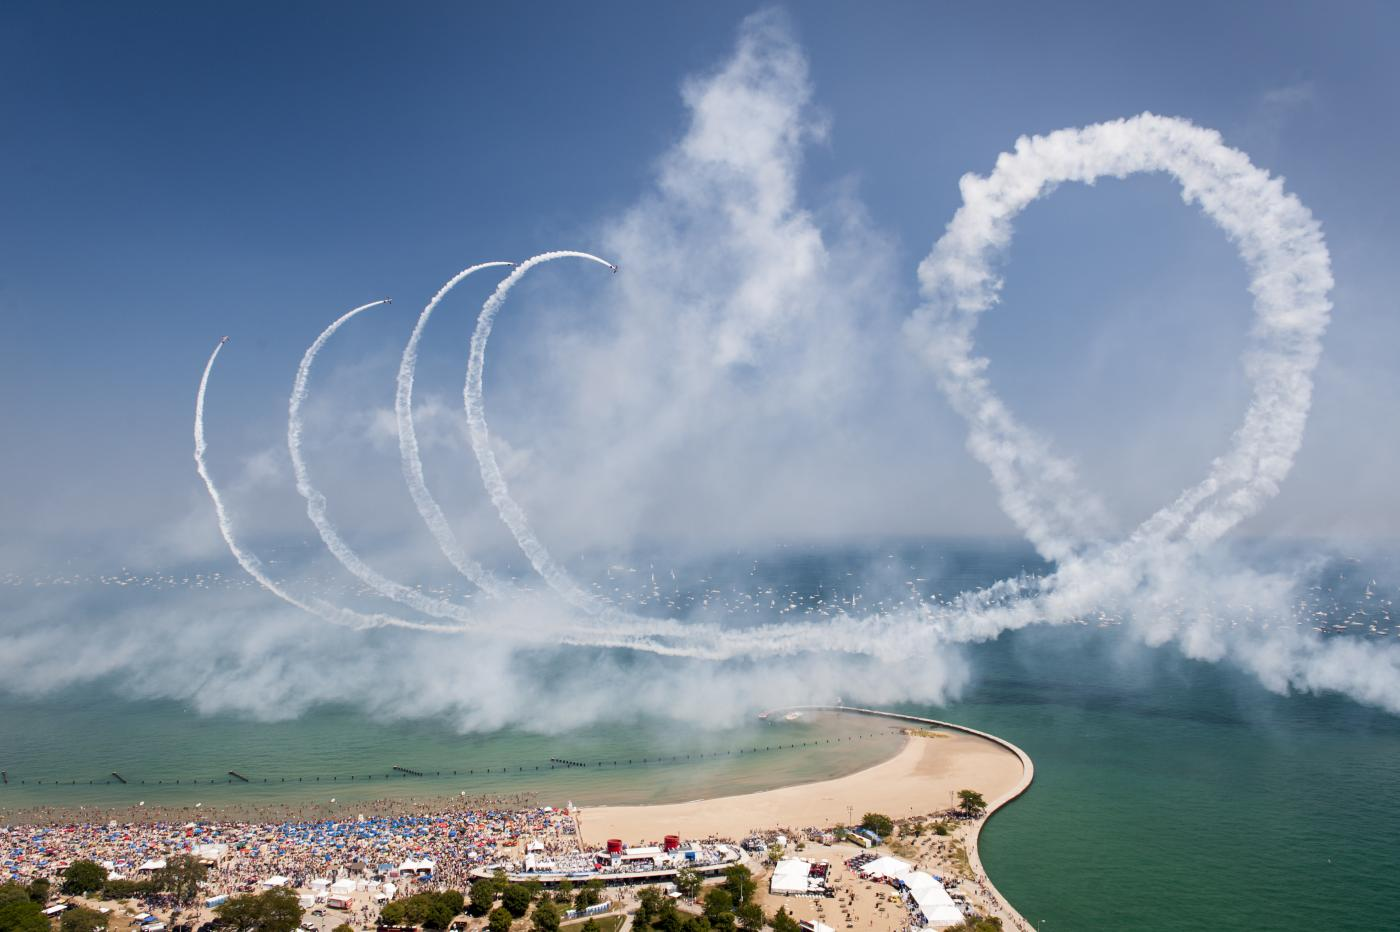 The Department of Cultural Affairs and Special Events says the Air and Water Show contributes an approximated $78 million in total business activity to the Chicago economy. However, Curious Citizen Leah says she doesn't believe the environmental price is worth it. (Courtesy City of Chicago)